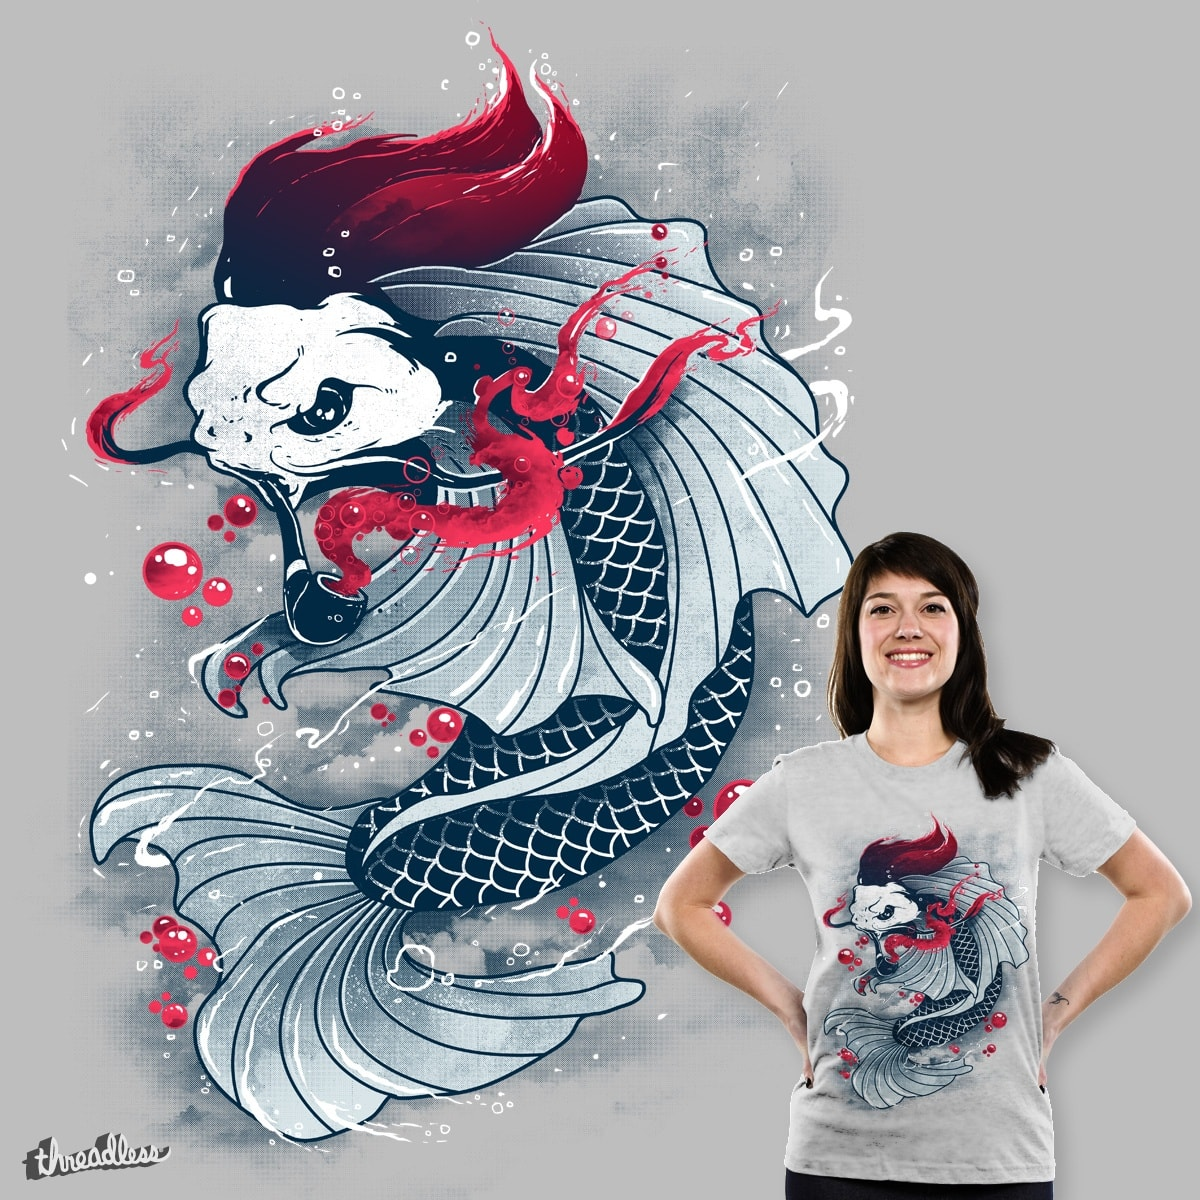 Insensible by Anthony Jay Adolfo on Threadless